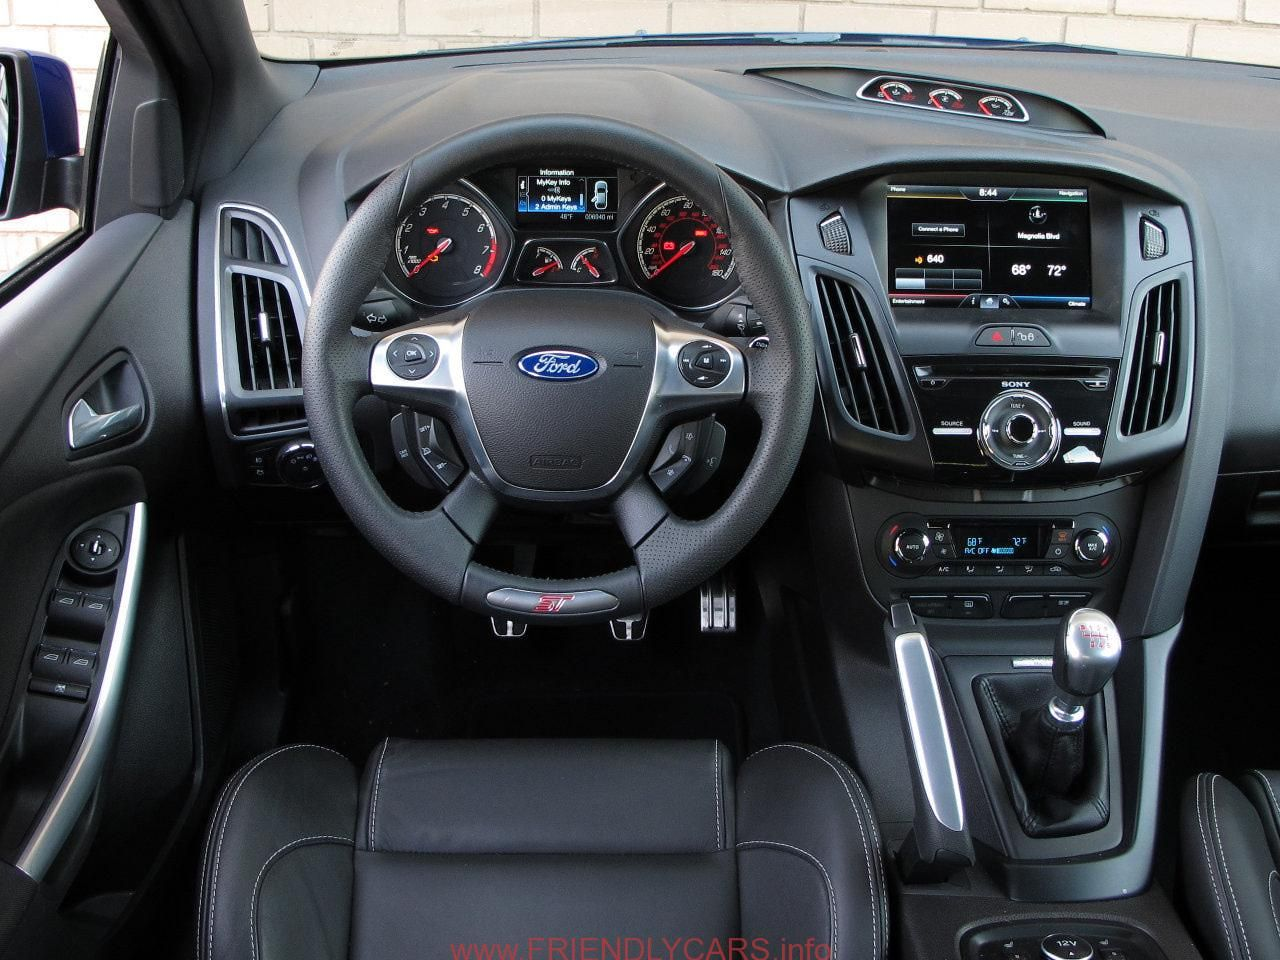 cool ford focus st interior seats car images hd new 2013 ford focus for sale near - Ford Focus St Interior